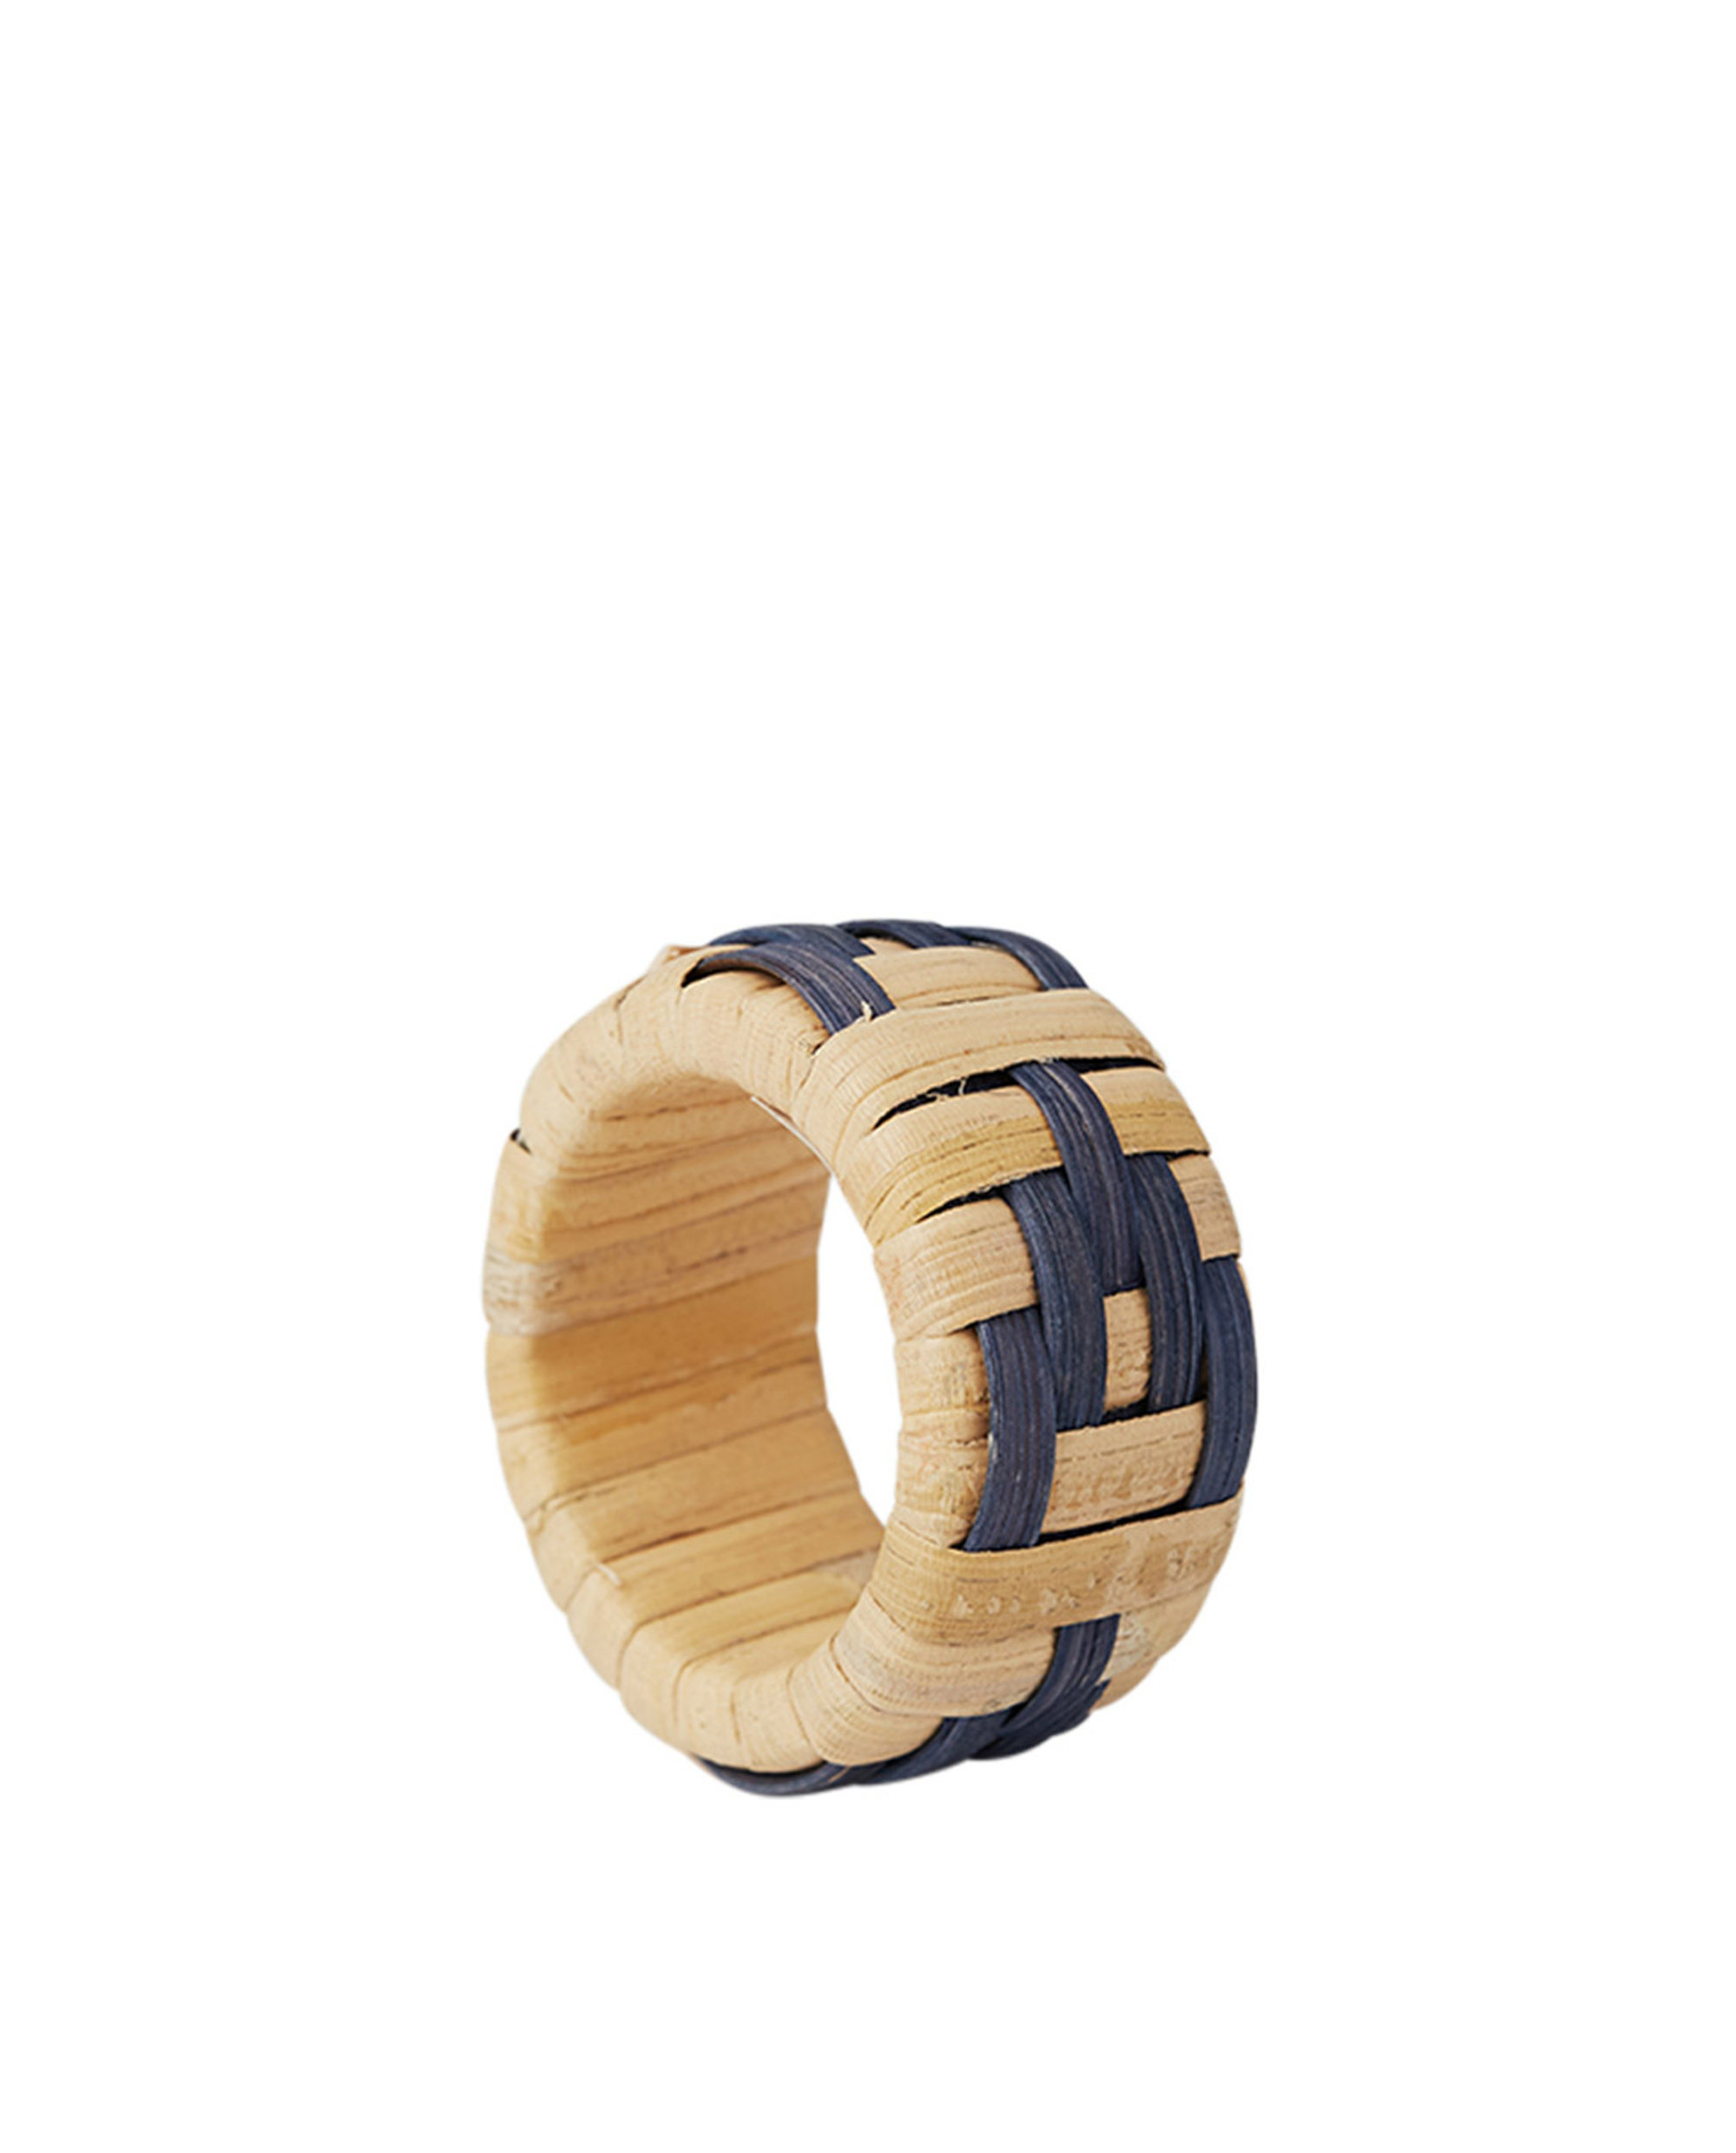 Wicker Napkin Ring, Blue